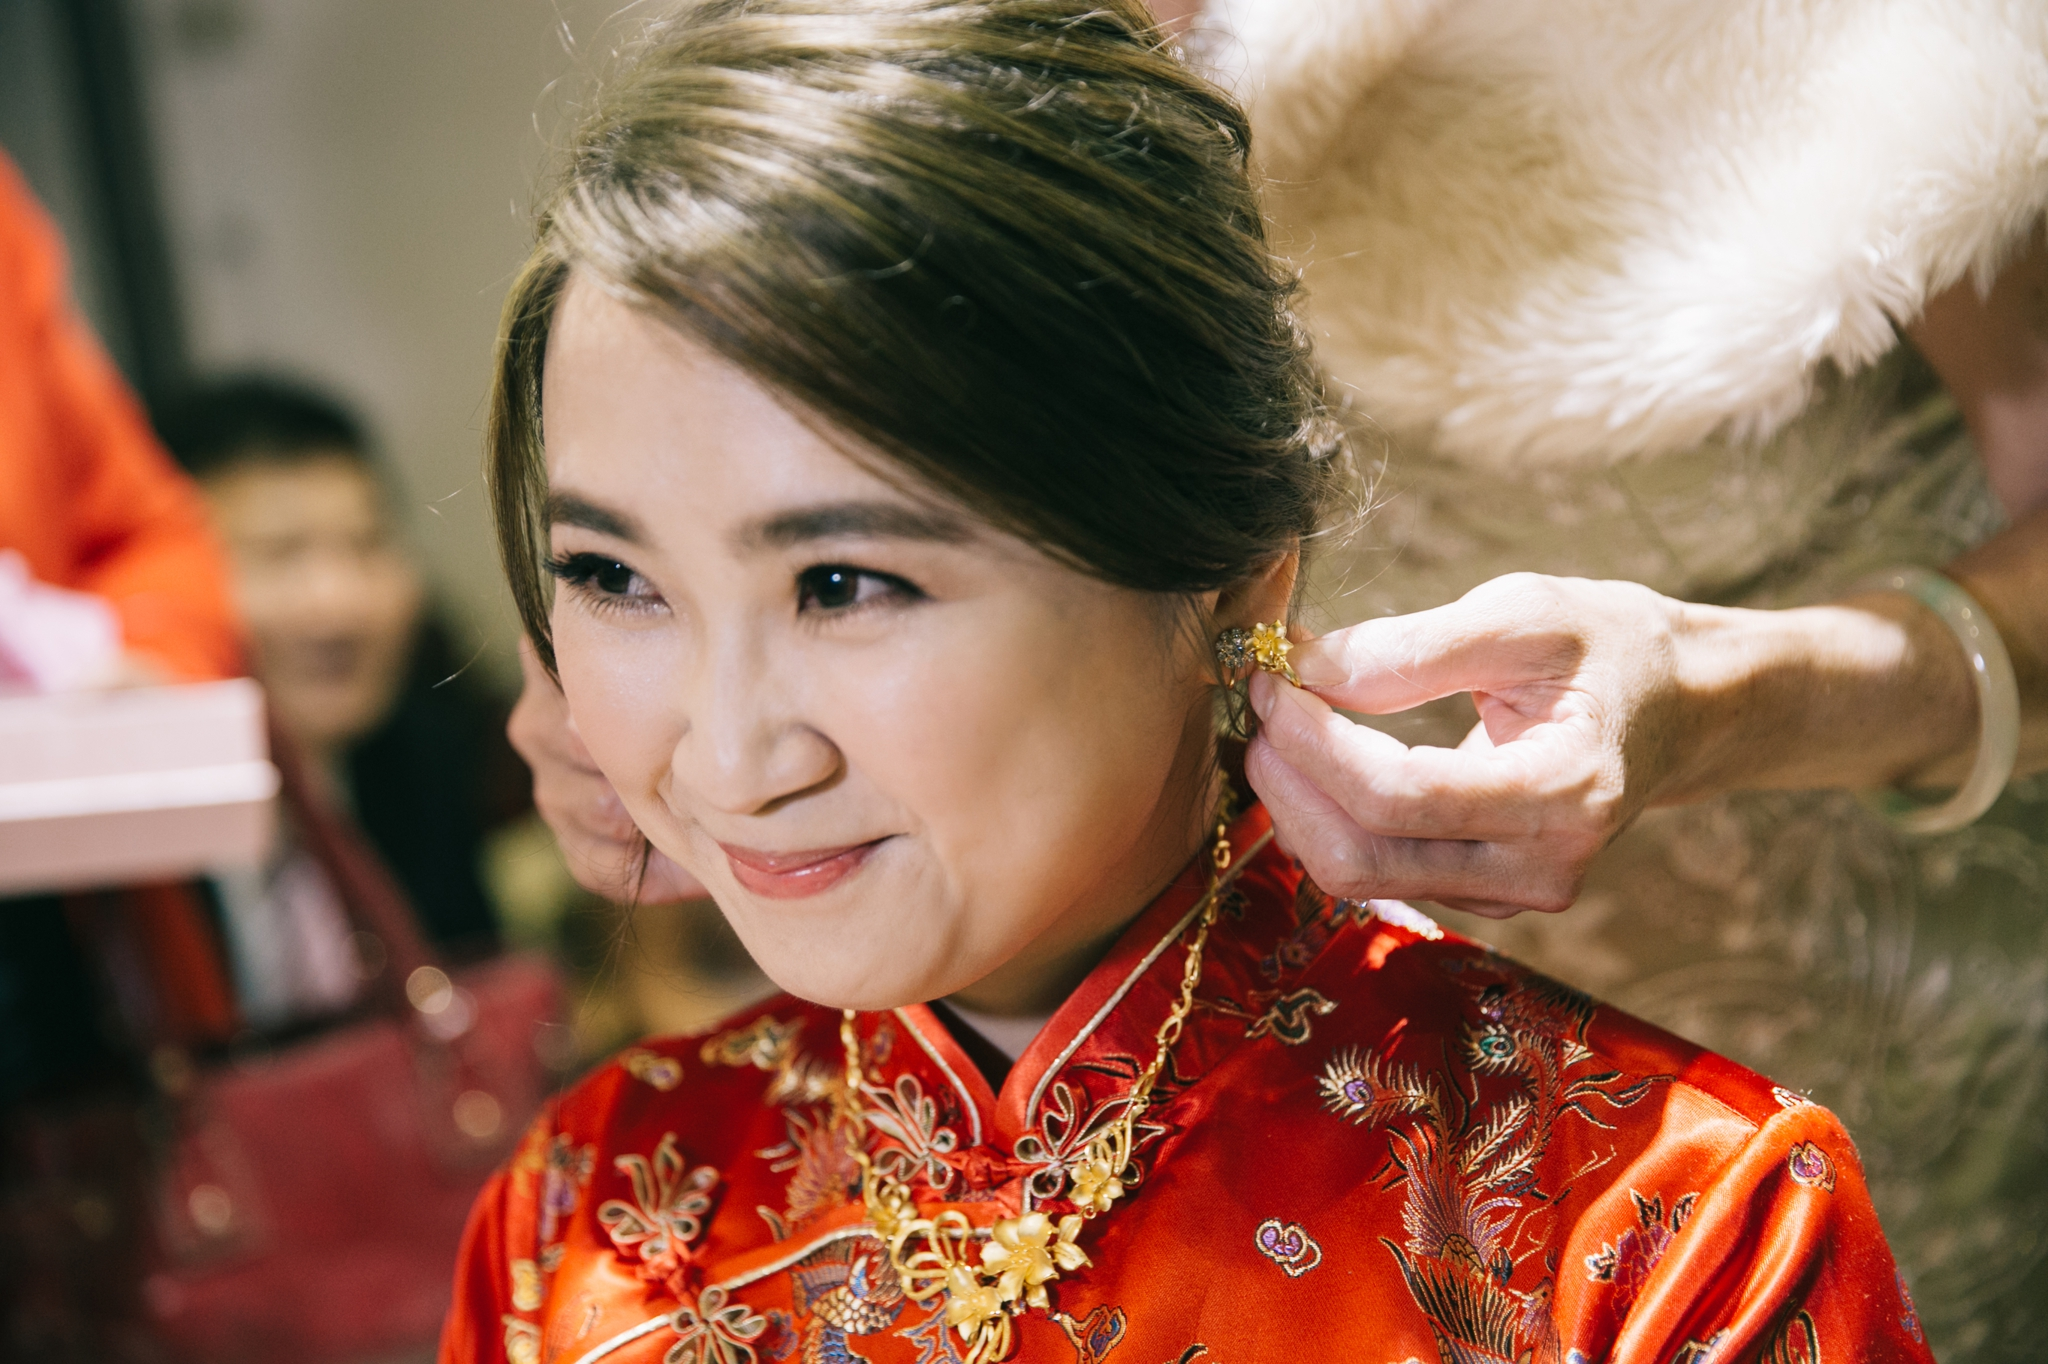 Keddy+Richard-wedding-新莊頤品飯店-045.jpg